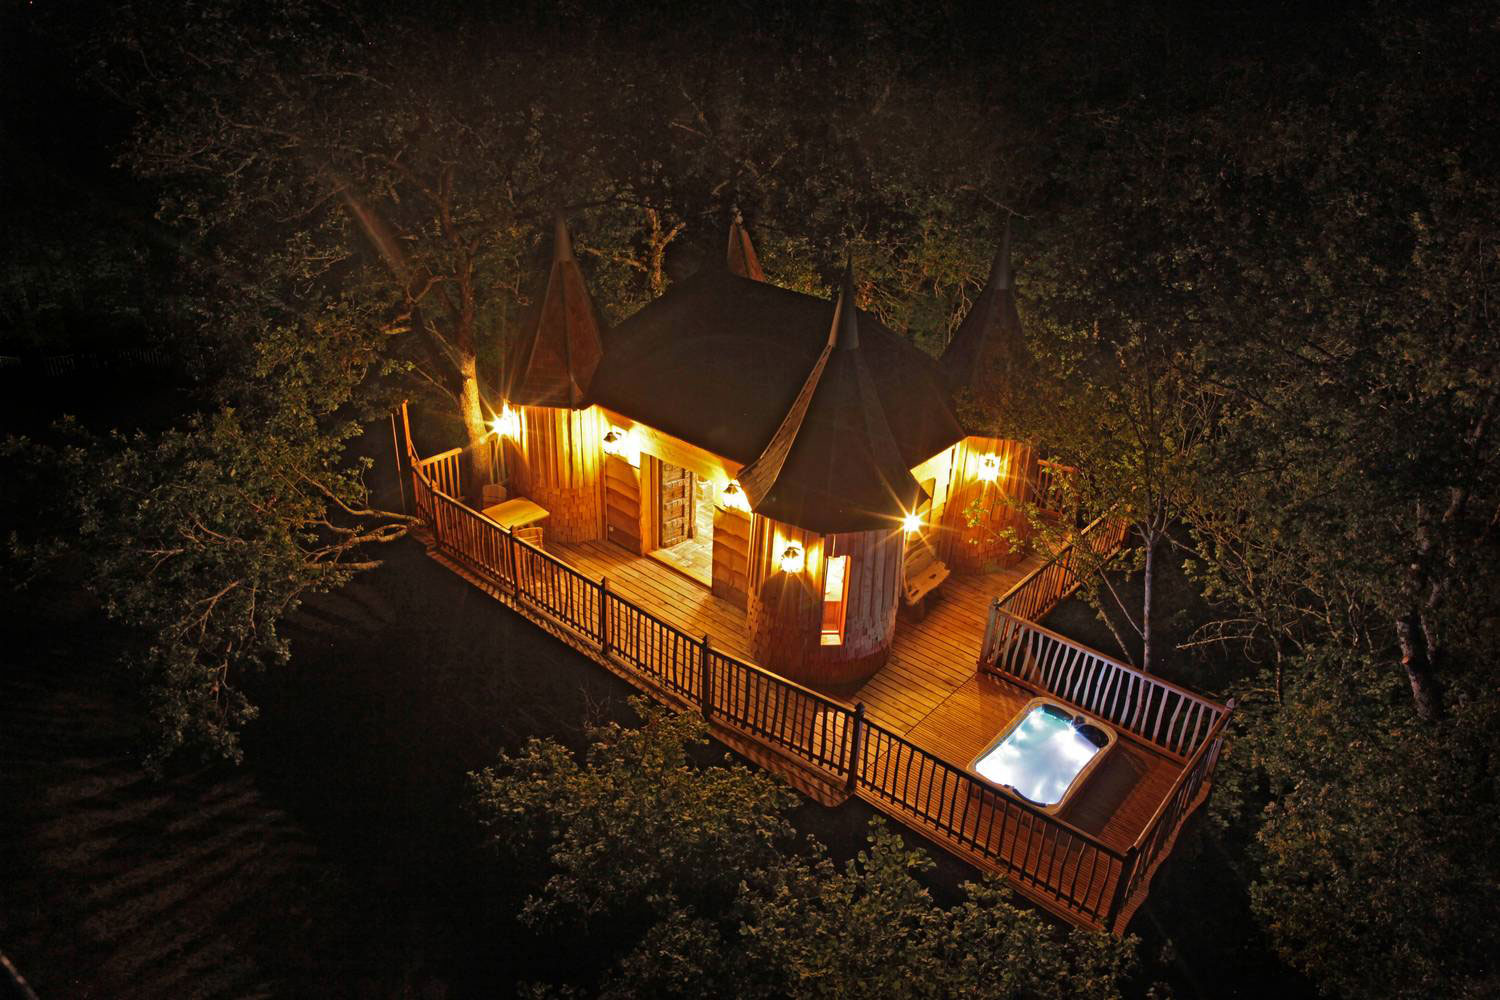 Hot Tub, Lighting, Evening, Treehouse in Nojals-et-Clotte, France